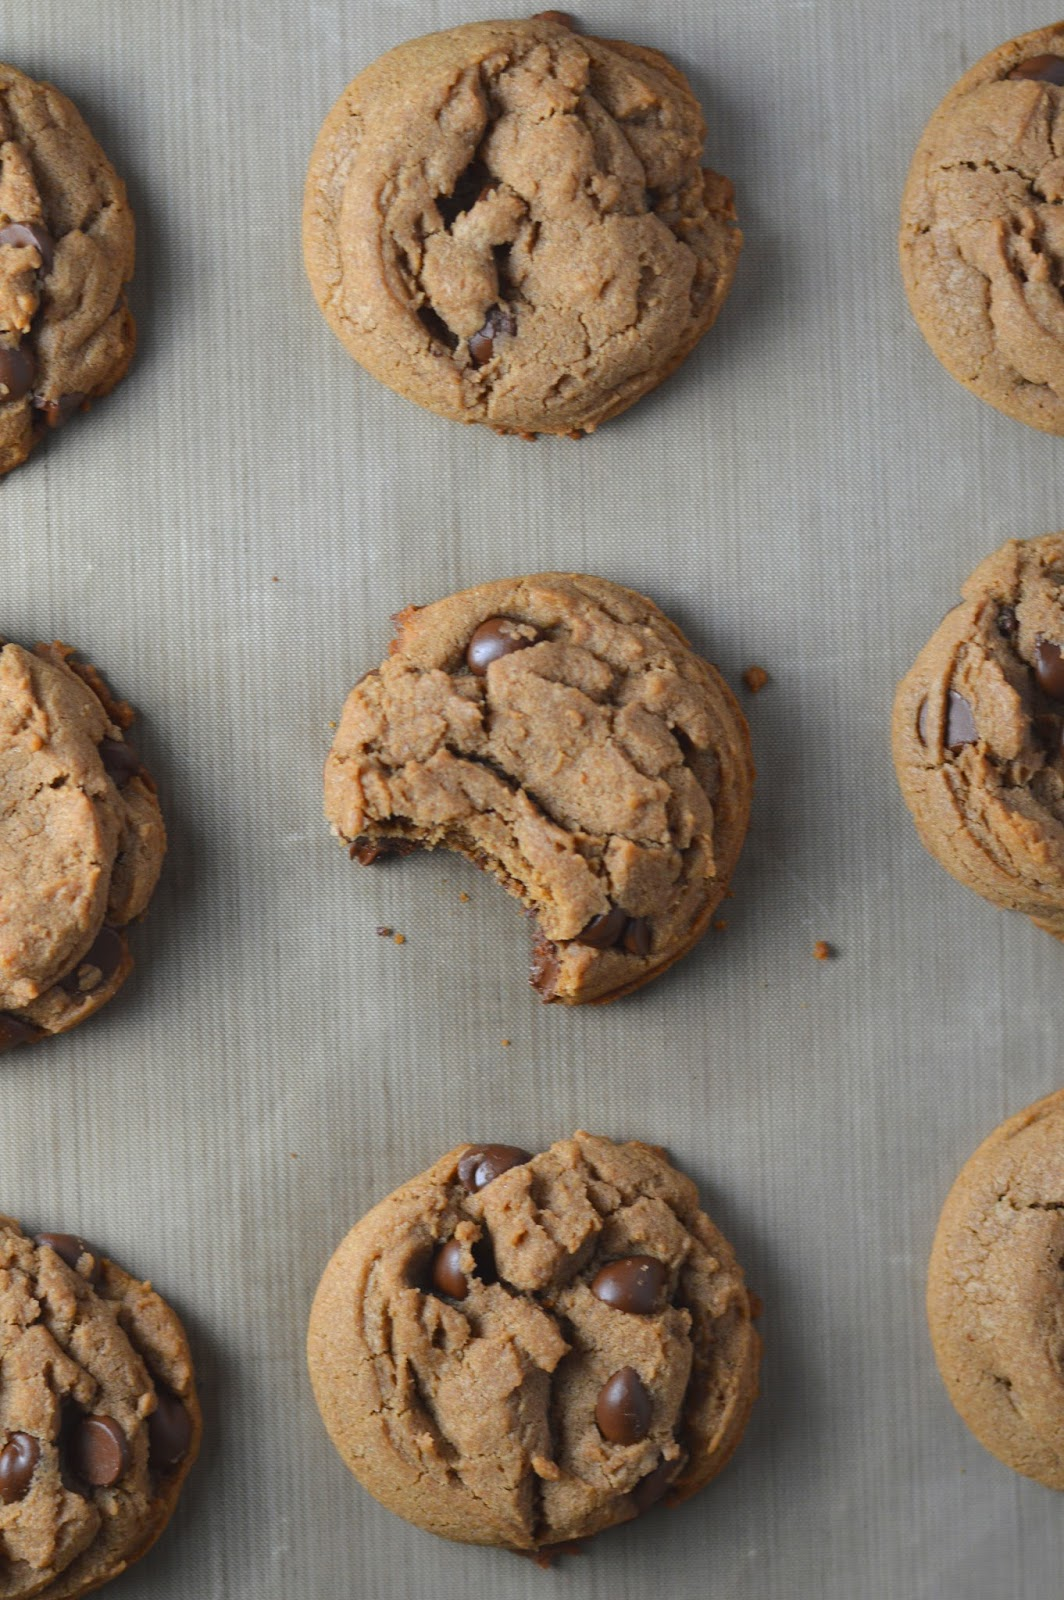 Squishy Chocolate Chip Cookies : Soft Nutella Chocolate Chip Cookies